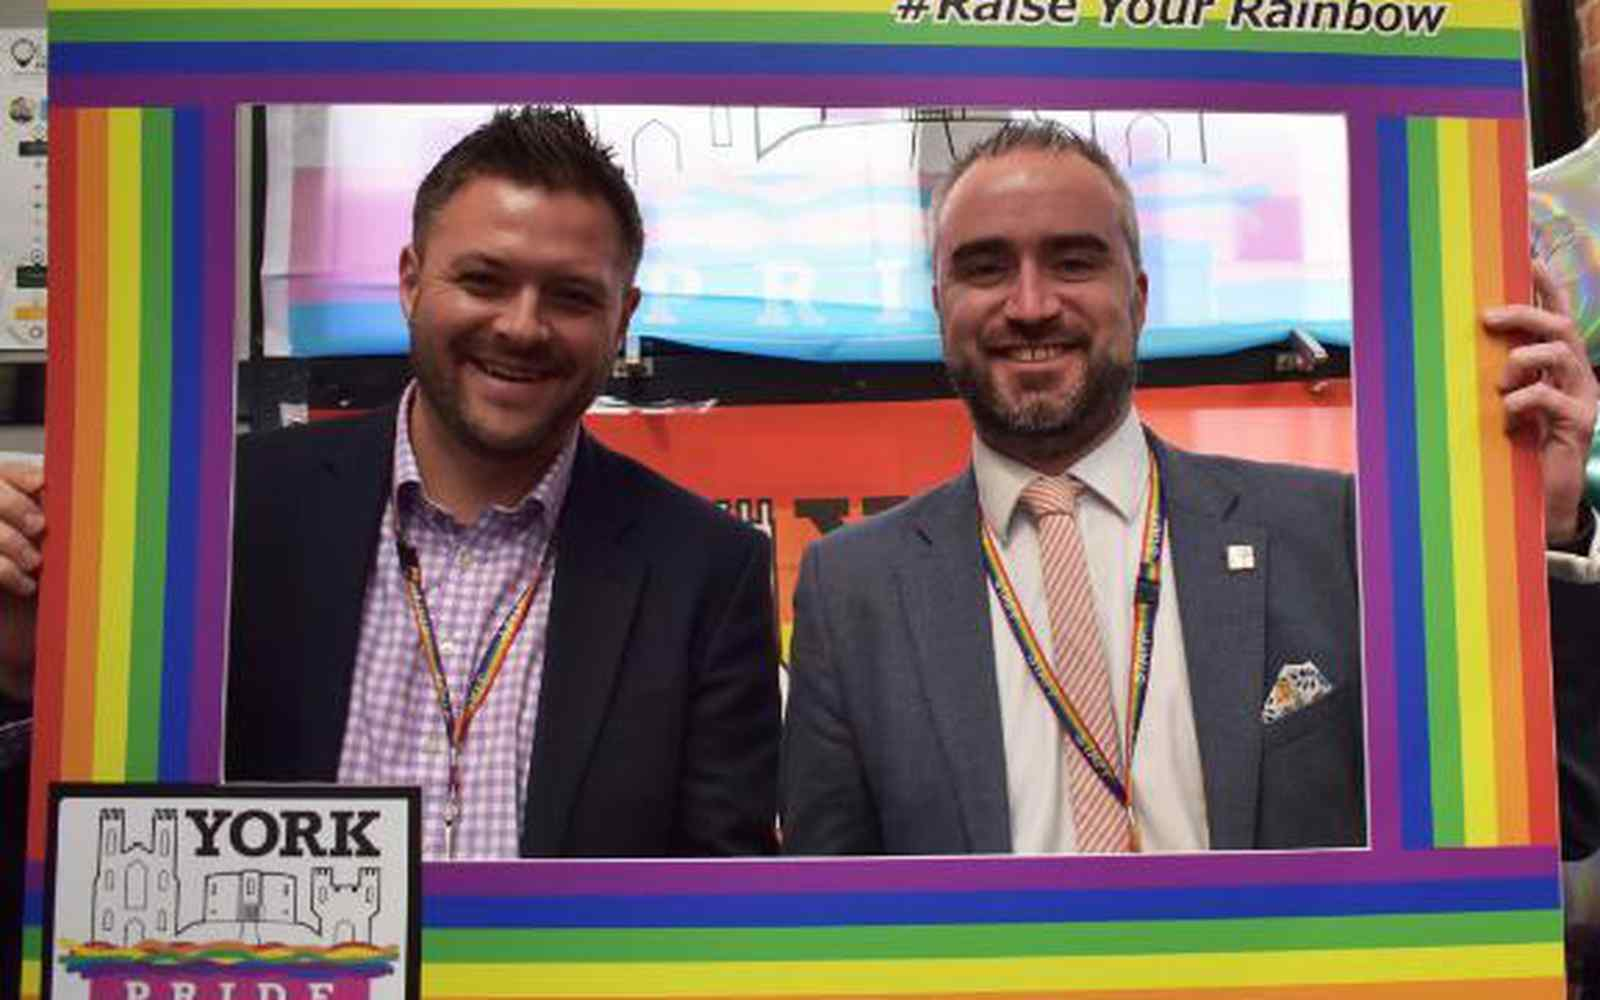 Rob Hickey and Phill Gray at York Pride launch